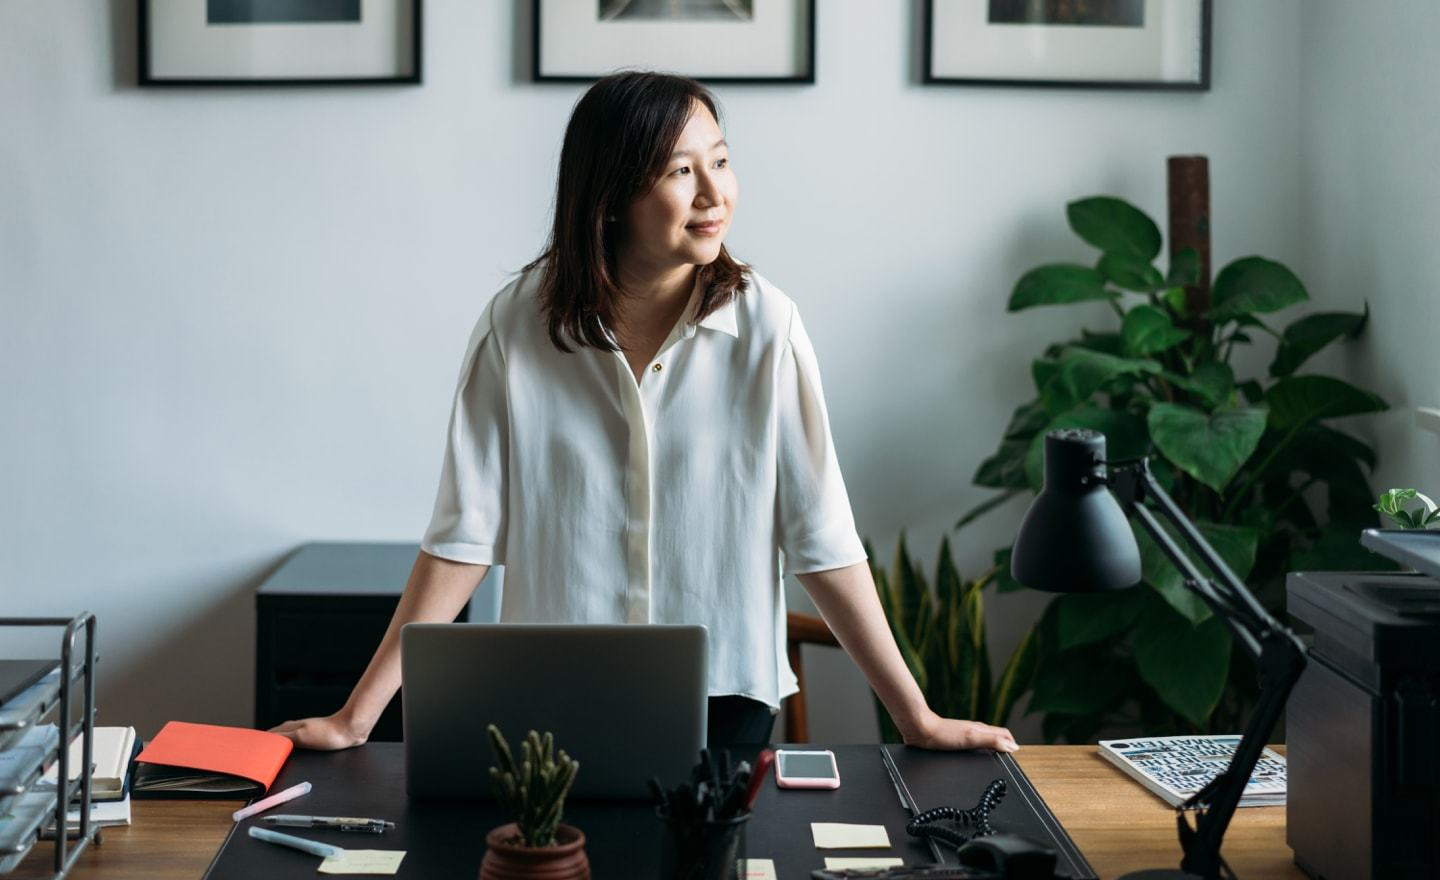 Asian woman at desk looking right